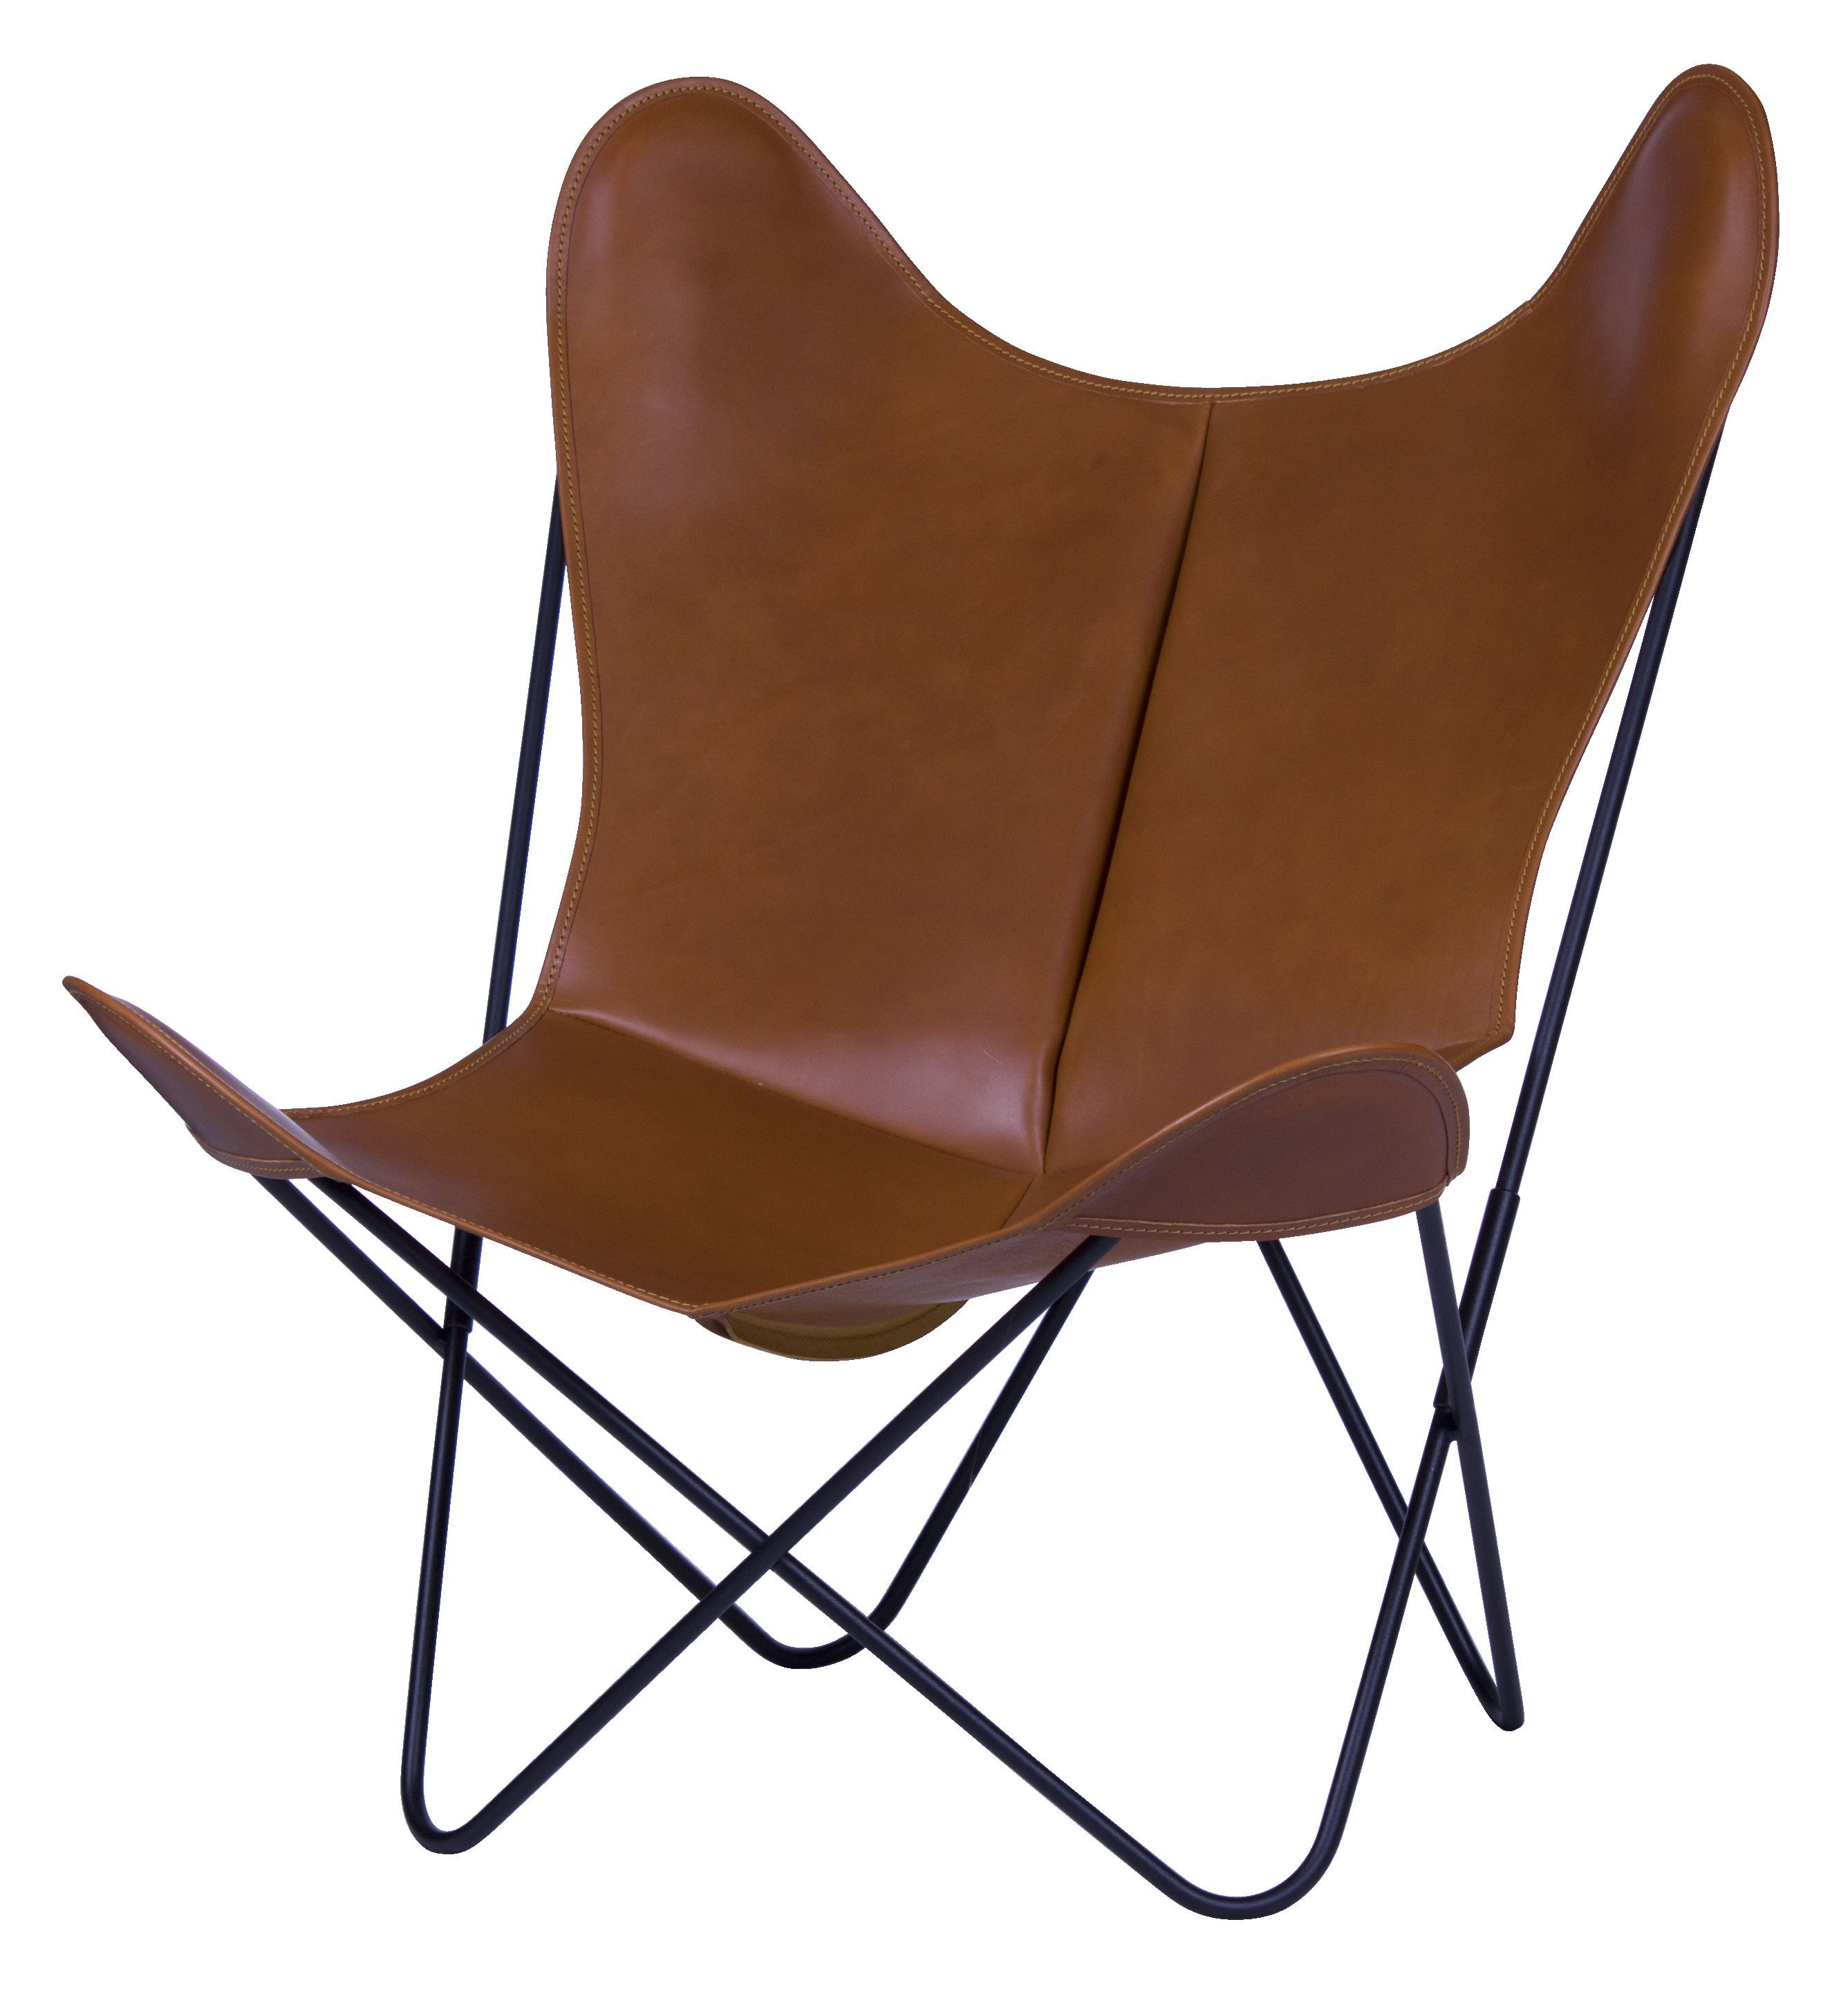 ferrari office chair uk clemson tailgate chairs aa butterfly armchair leather black structure